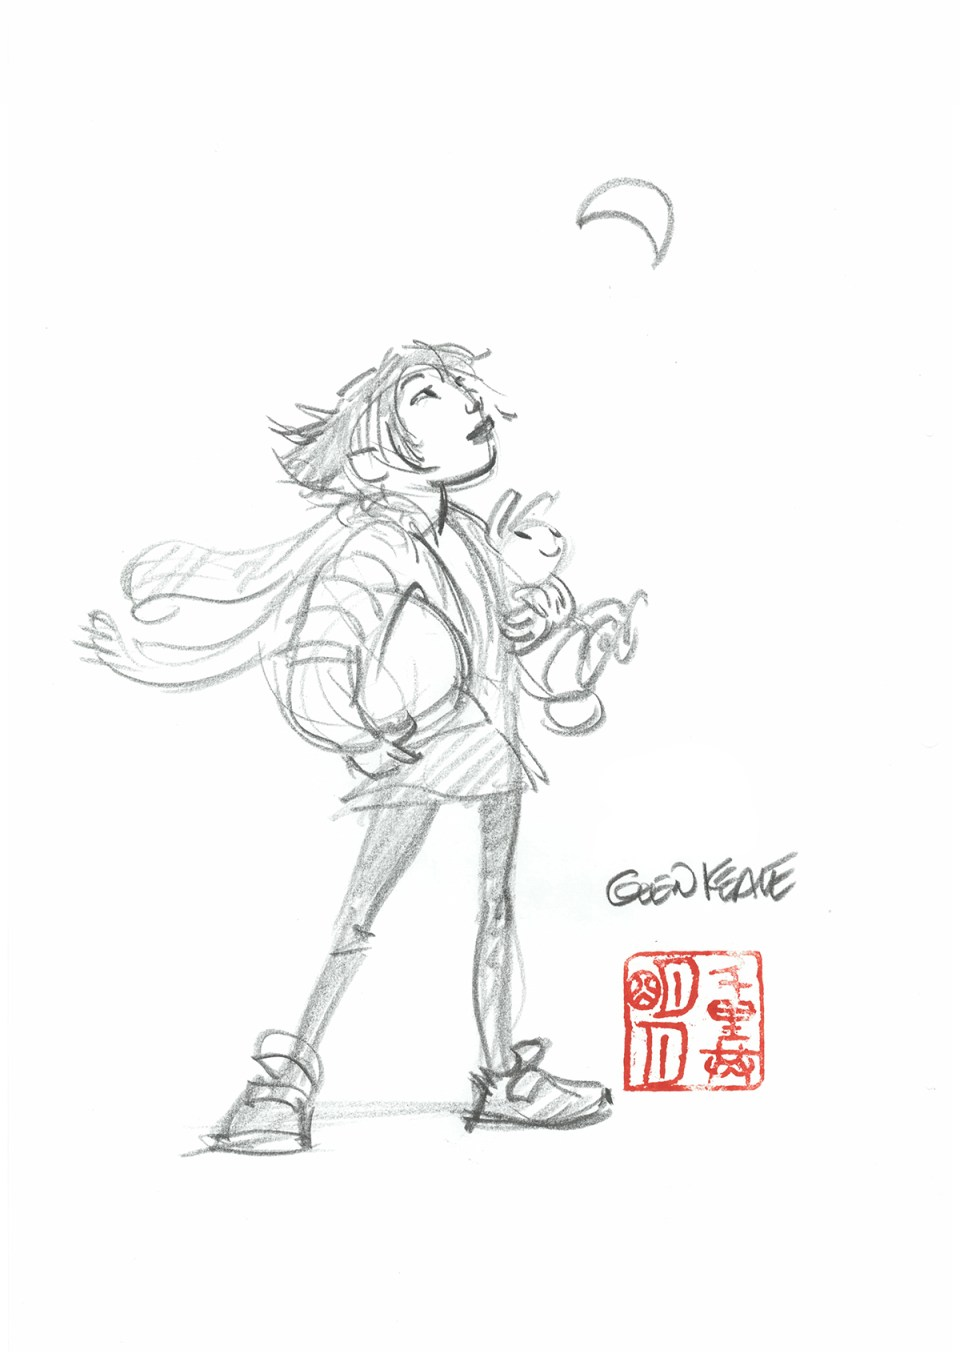 Glen_Keane Even Though We Are Separated By Thousands of Miles, We Share The Same Moon